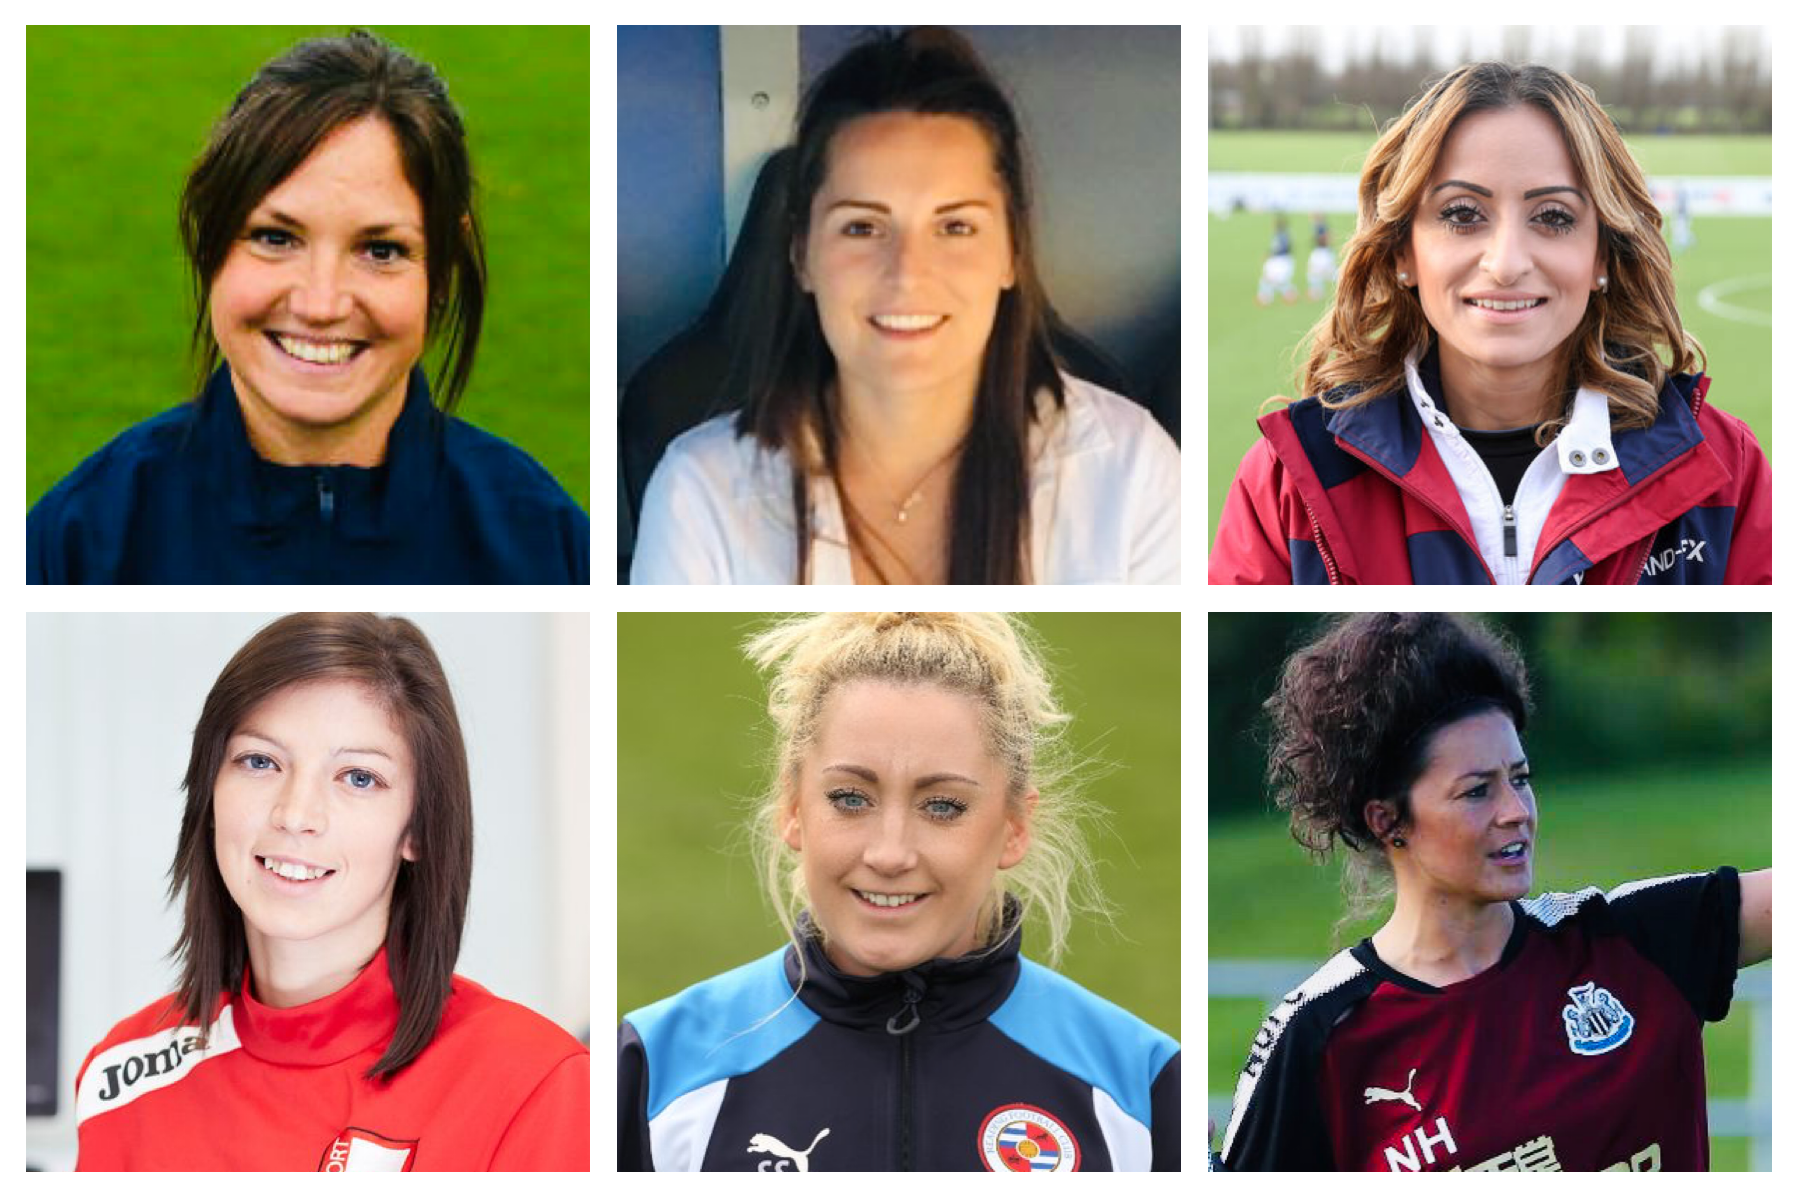 From top, left to right: <b>Claire Lynne Smith</b> (Stoke City U11 Head Coach), <b>Sarah Lowden</b> (Reading U12s), <b>Manisha Tailor MBE</b> (QPR Foundation Phase Lead), <b>Nia Davies</b> (Swansea Foundation Phase coach), <b>Shelley Strange</b> (Reading U11 Lead Coach), <b>Natalie Henderson</b> (Newcastle U12 coach)